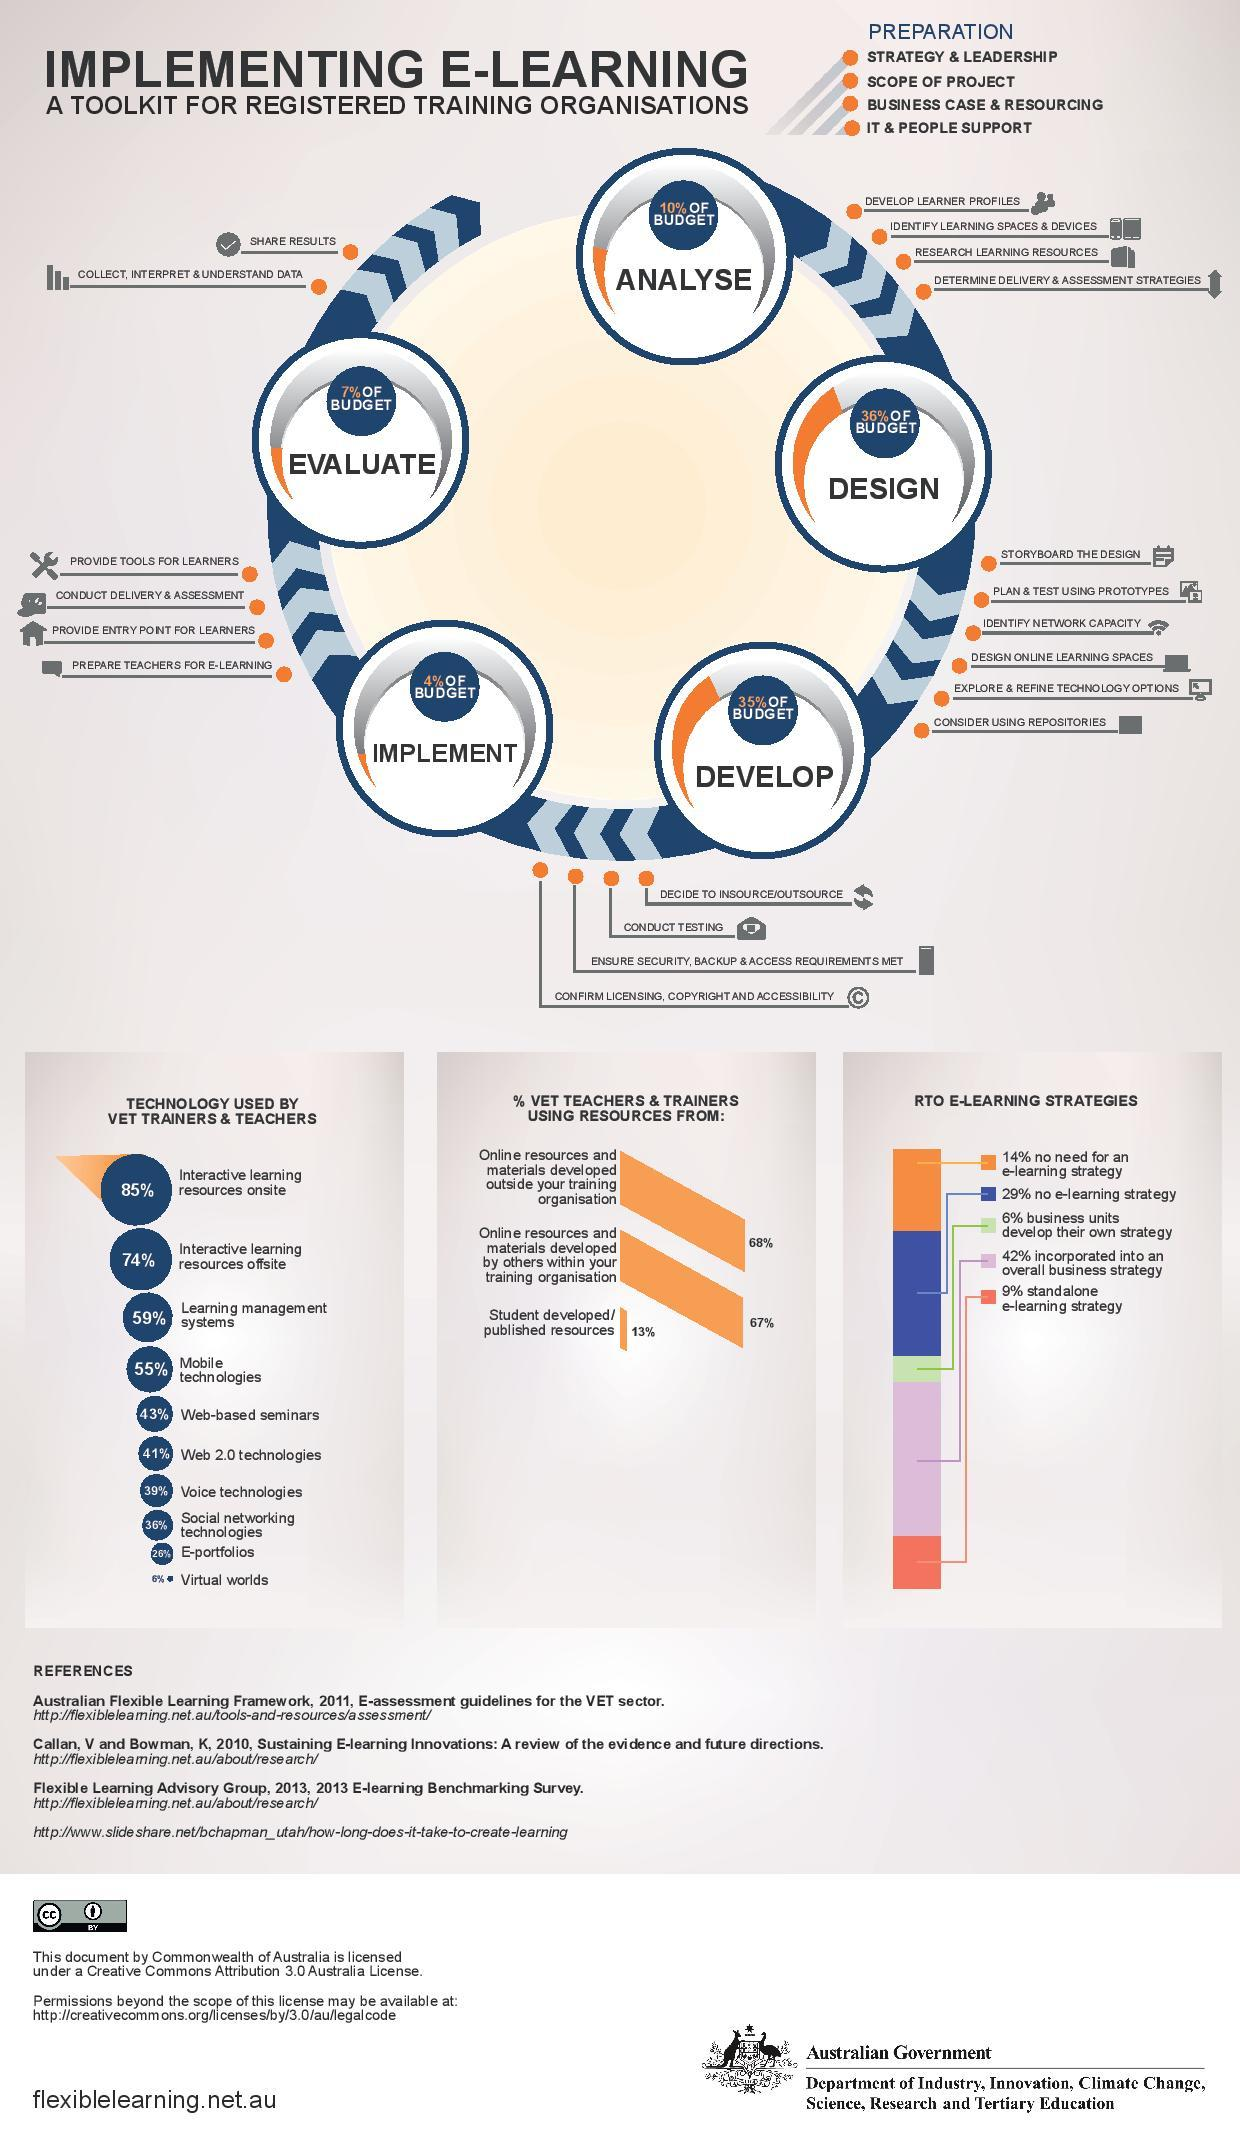 eLearning Implementation Toolkit Infographic